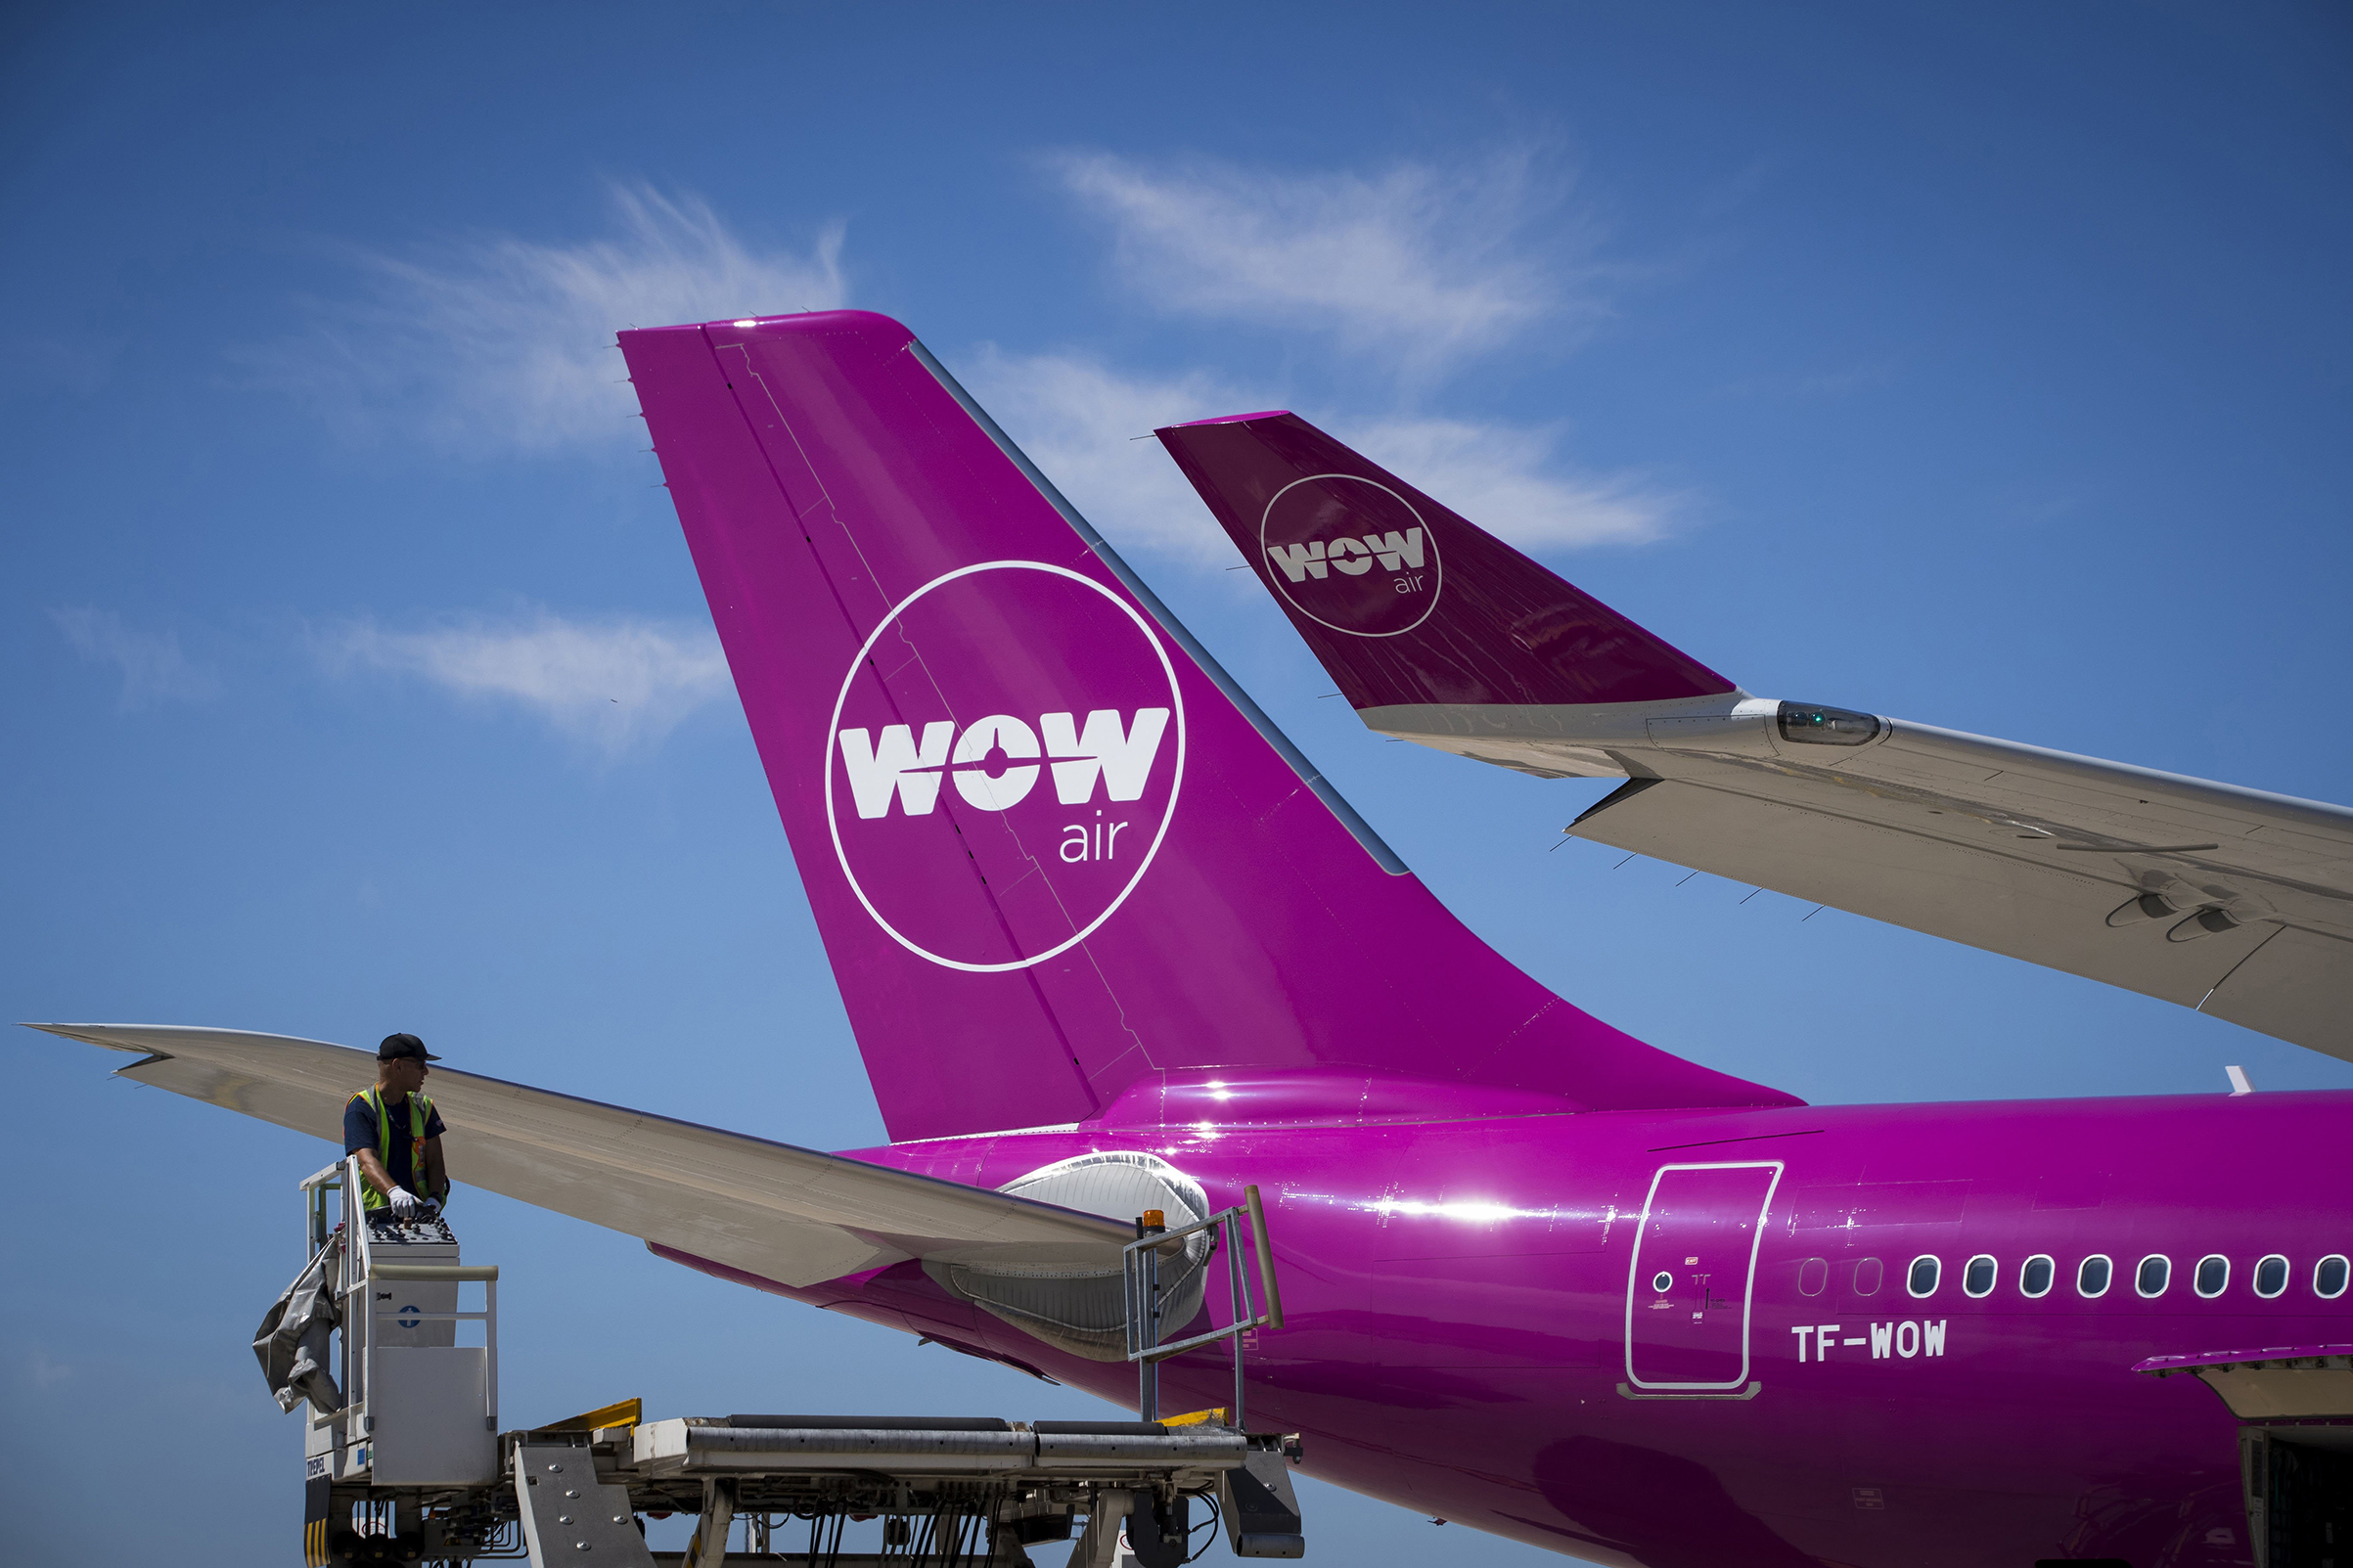 An aircraft of Icelandic low-cost airline WOW Air on the tarmac of Roissy-Charles de Gaulle Airport, north of Paris on Aug. 6, 2018.